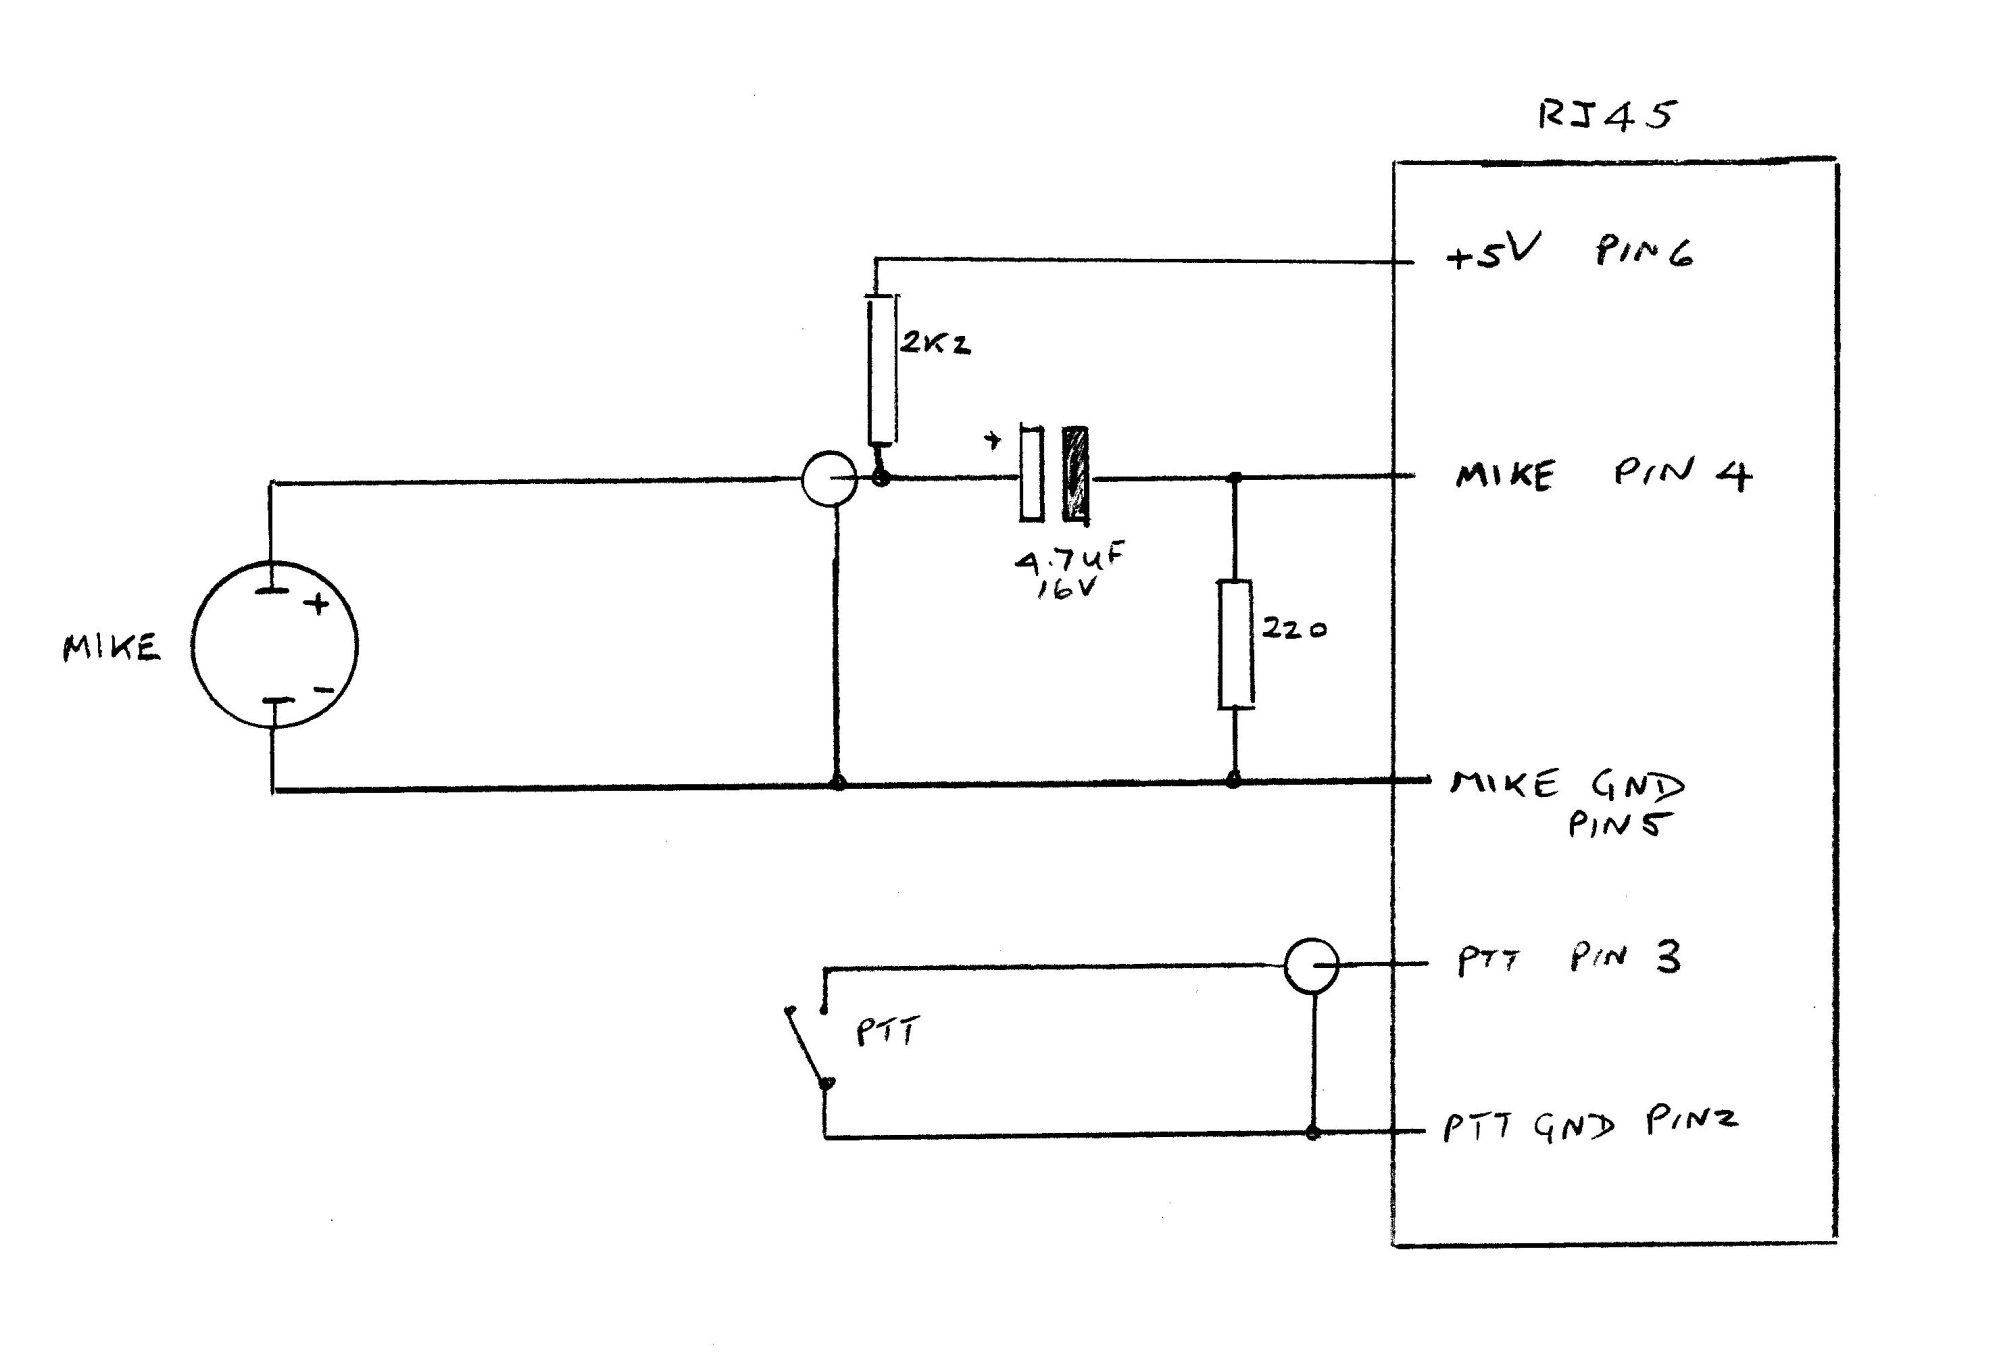 hight resolution of boom headset with mic wiring diagram simple wiring diagram schemaboom headset with mic wiring diagram wiring